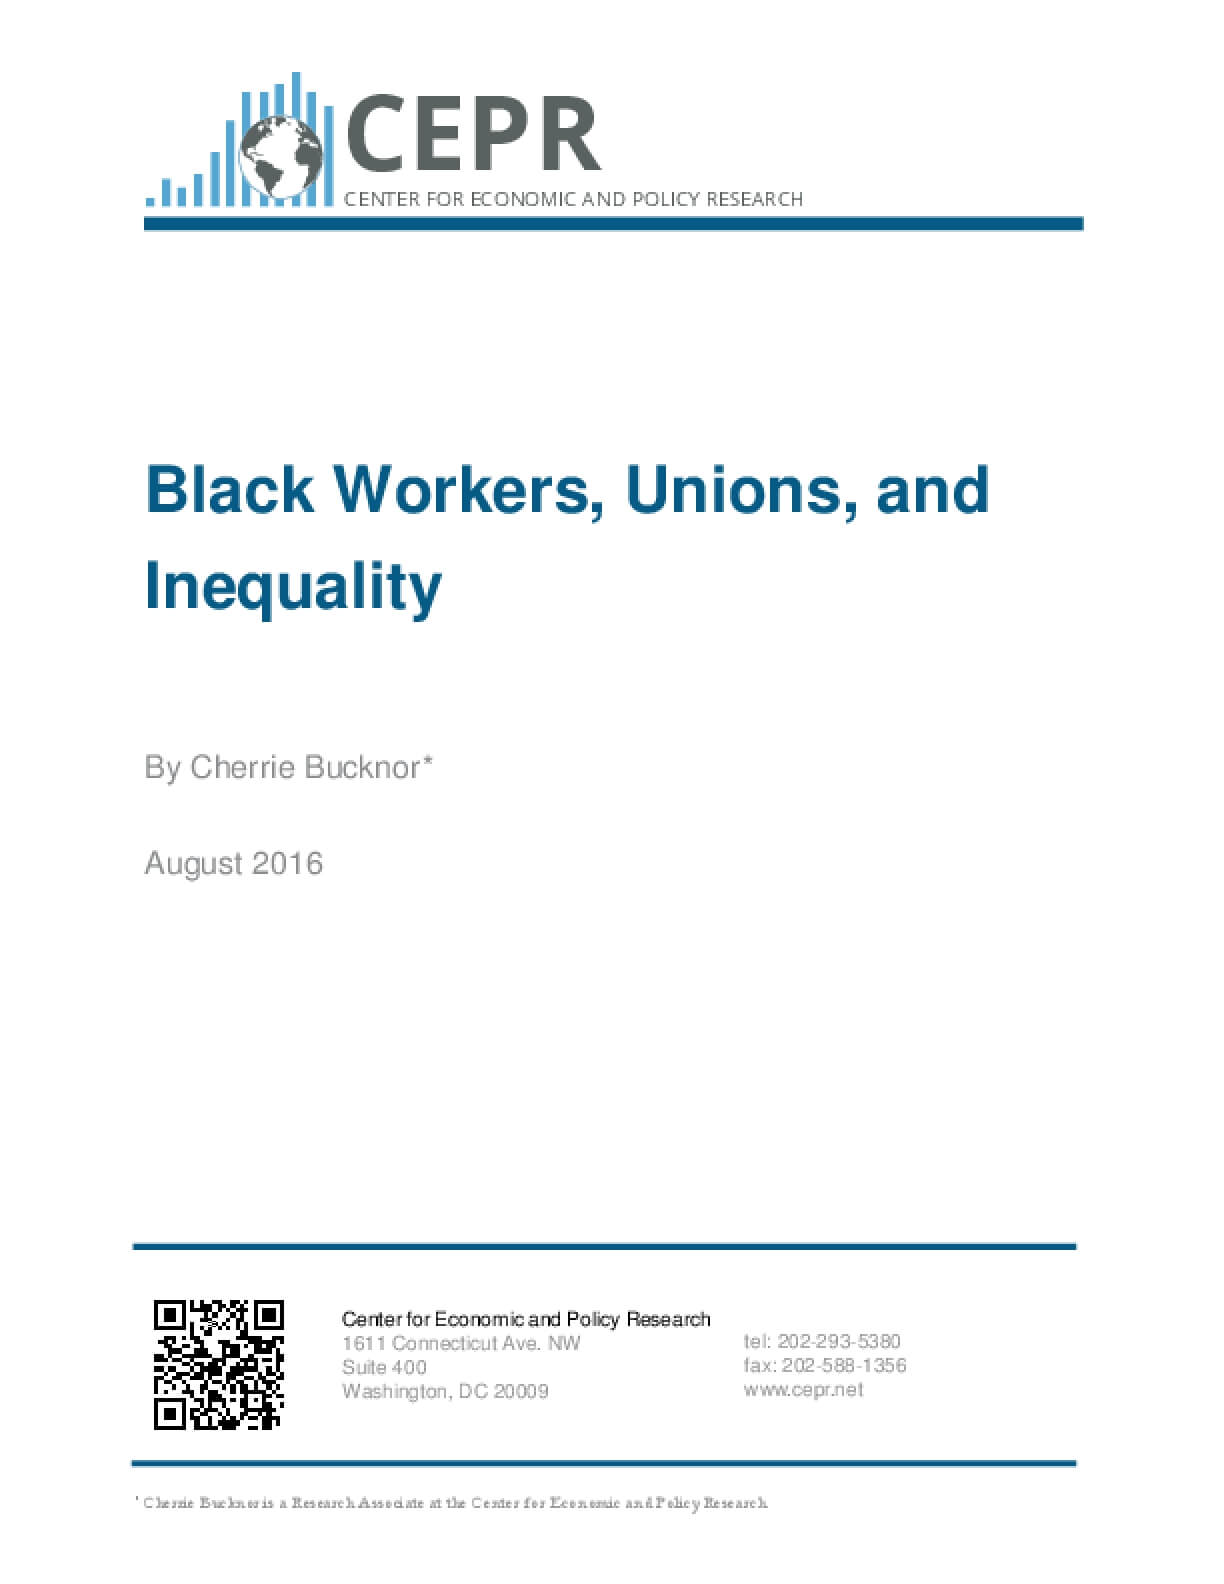 Black Workers, Unions, and Inequality